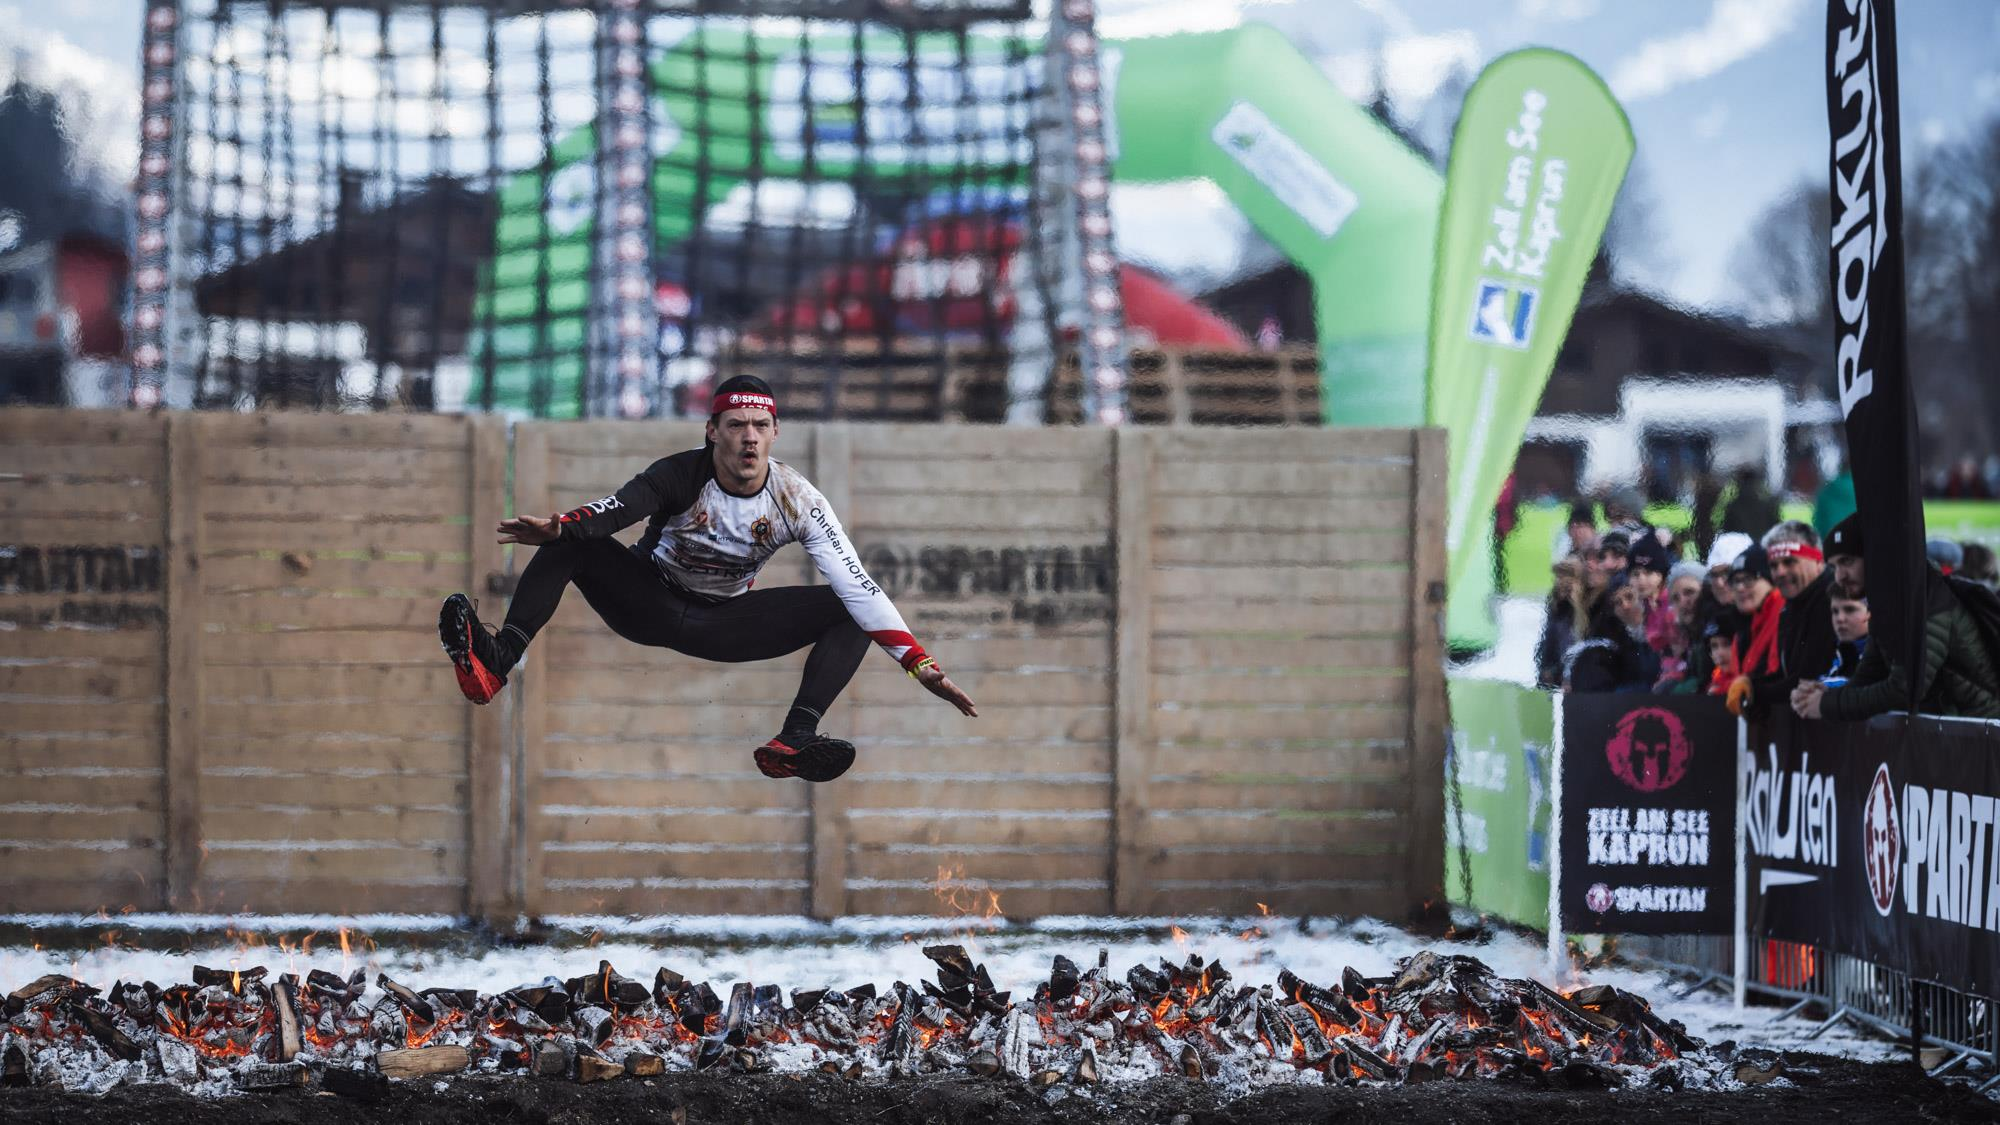 Winter Spartan Race - 17.01.2021